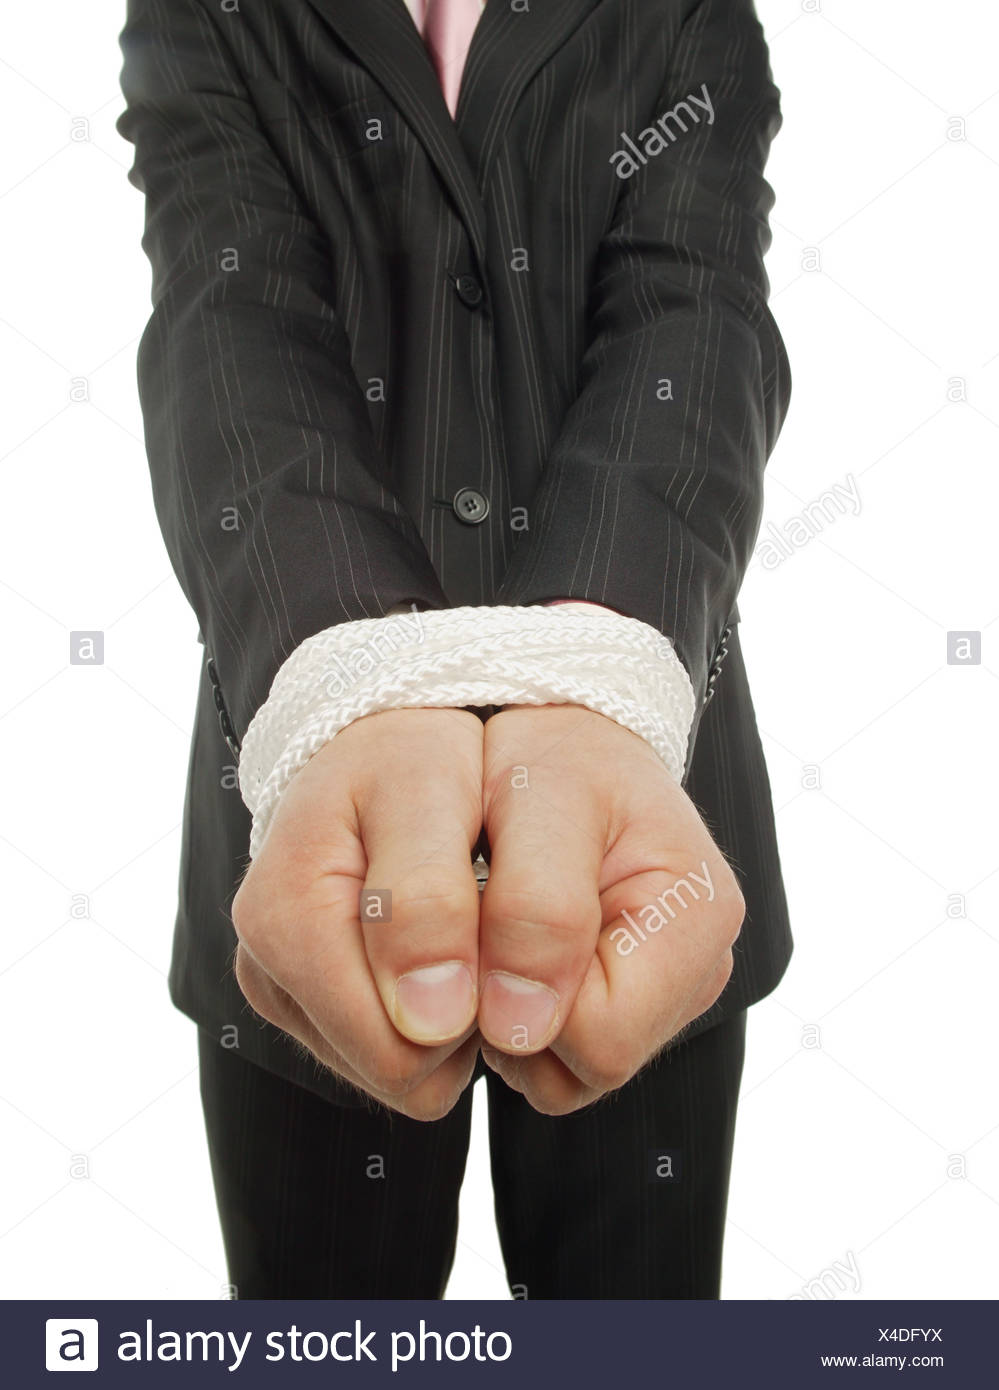 Man with his hands tied - Stock Image